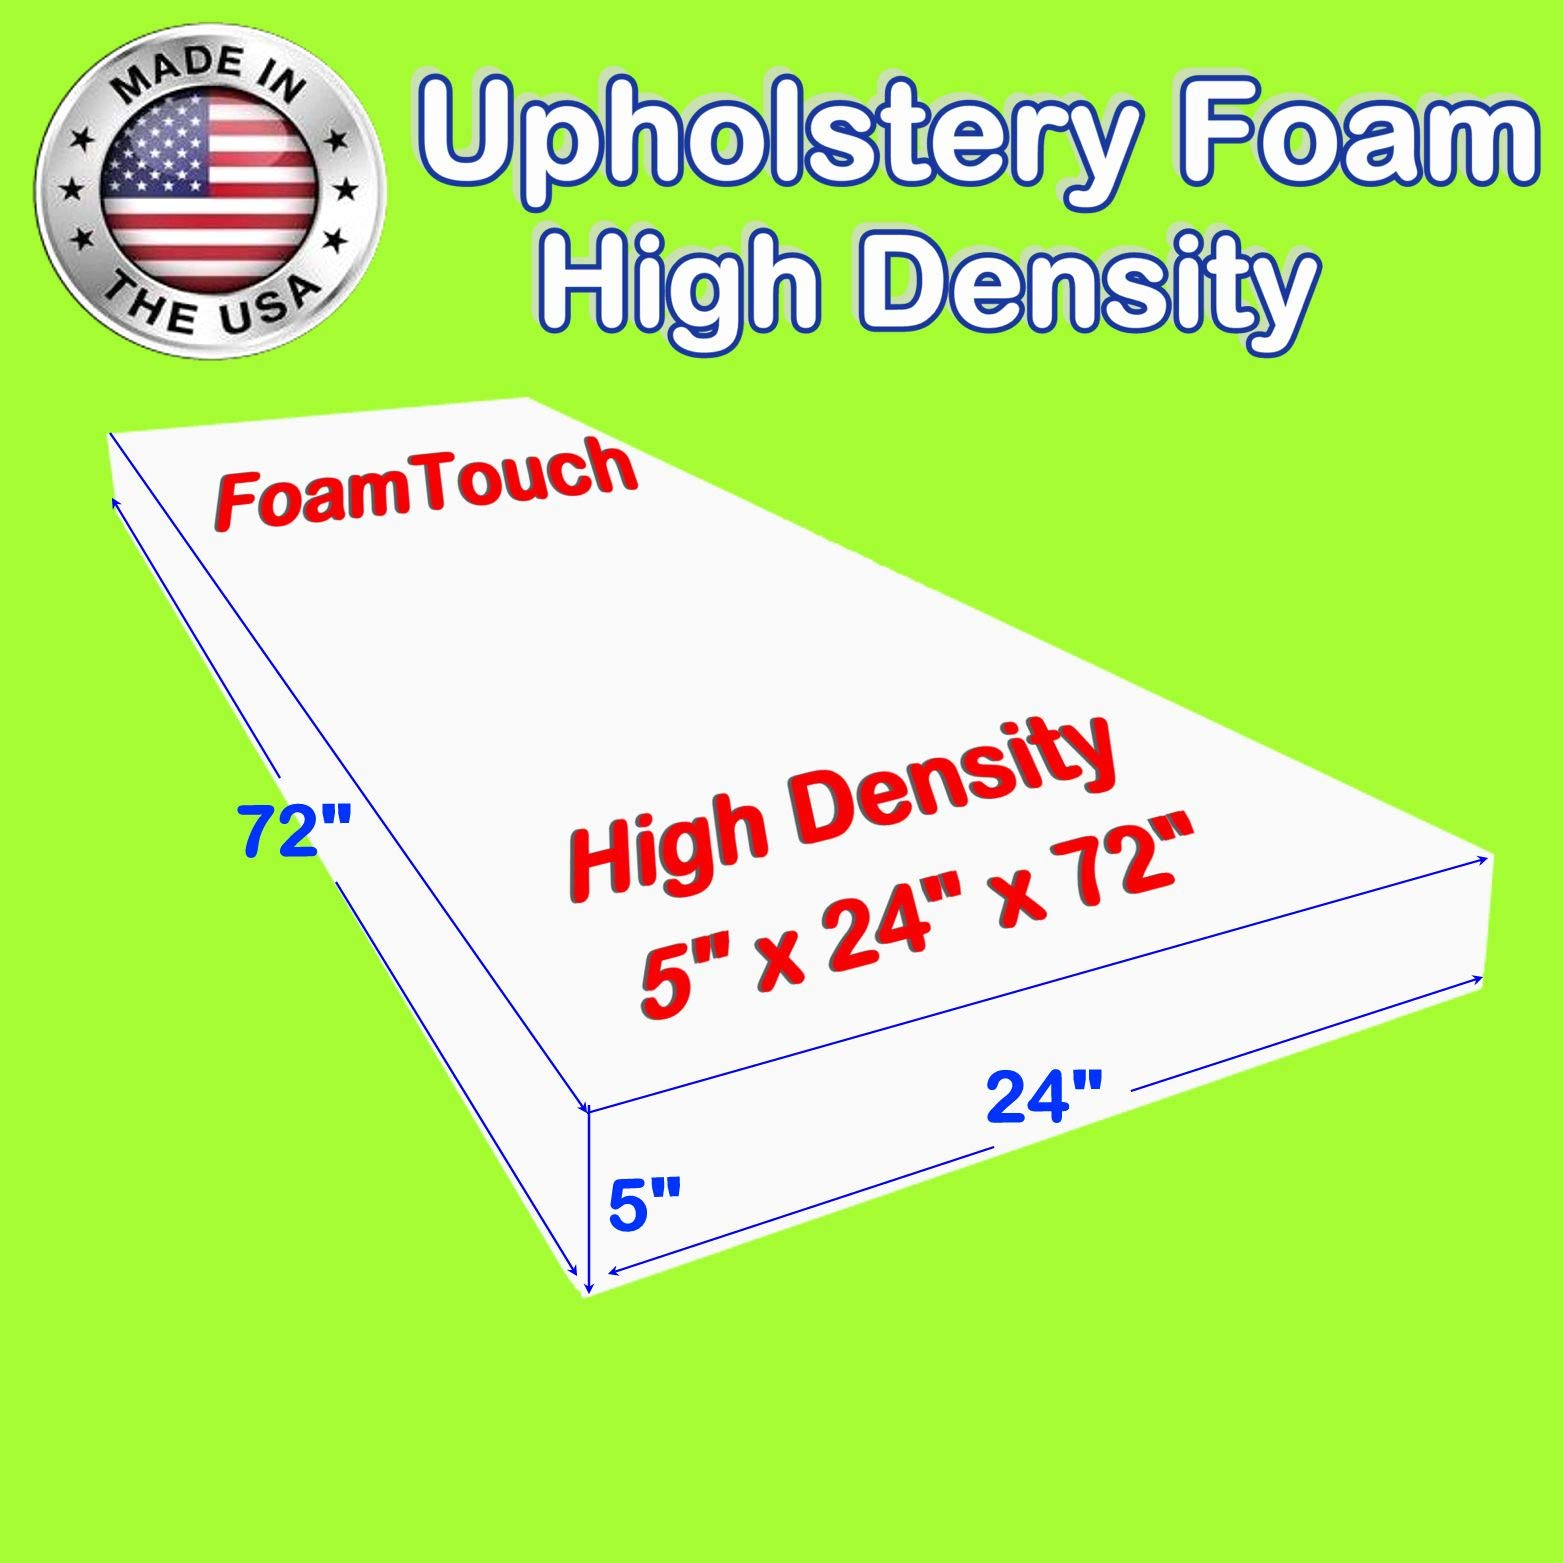 FoamTouch Upholstery Foam Cushion High Density, Made in USA, 5'' H x 24'' W x 72'' L by FoamTouch